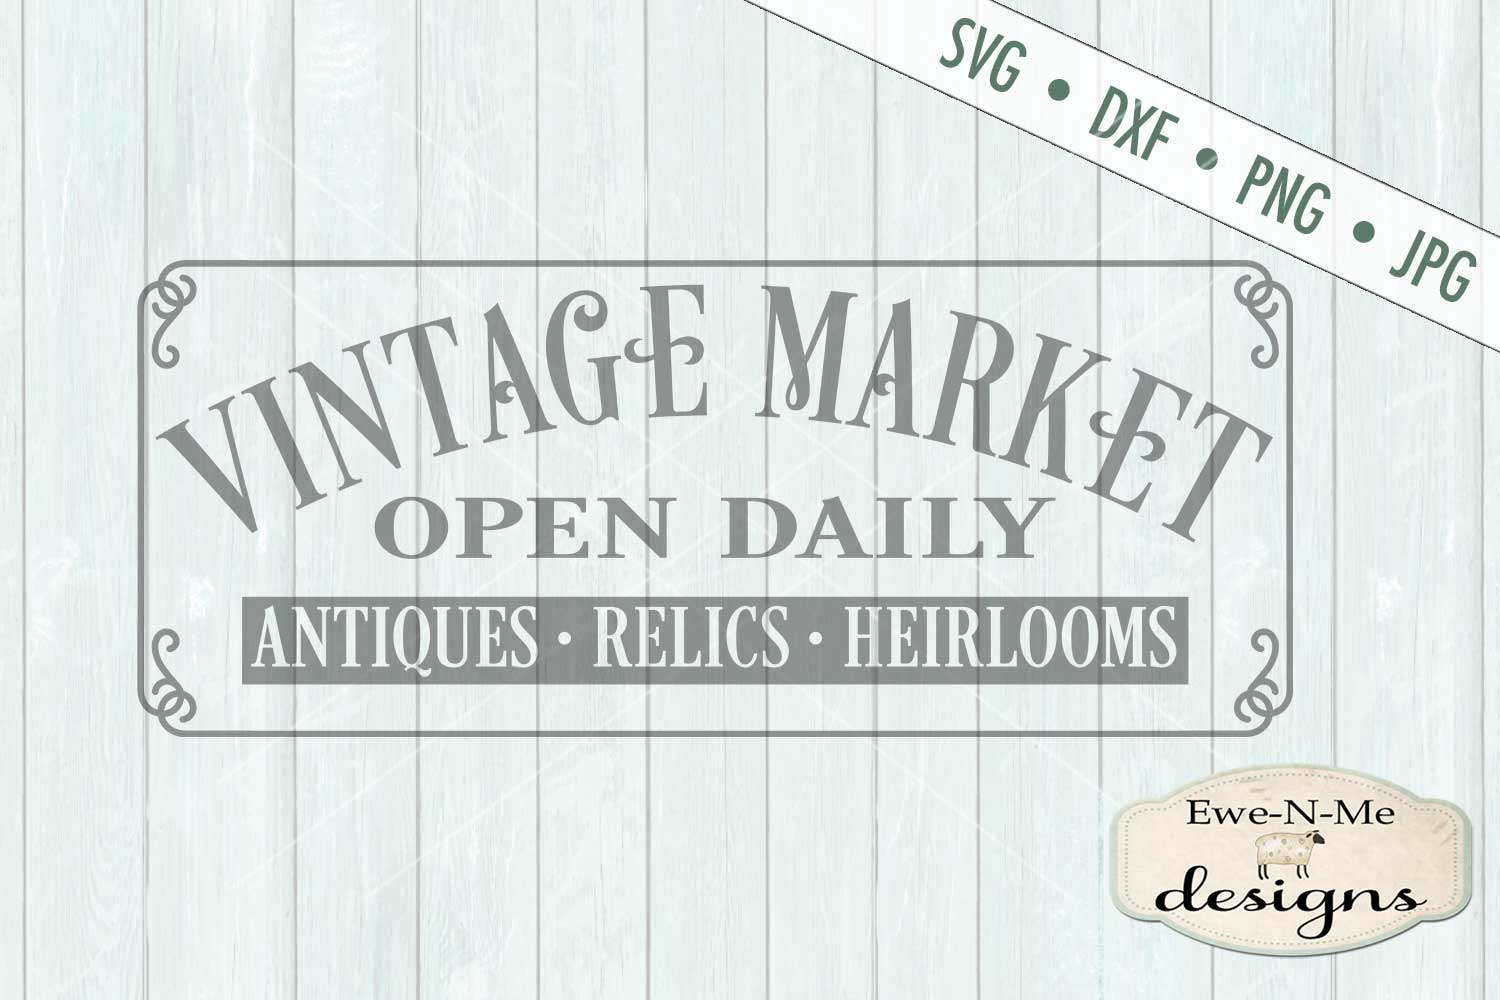 Vintage Market Open Daily - SVG DXF Files example image 2